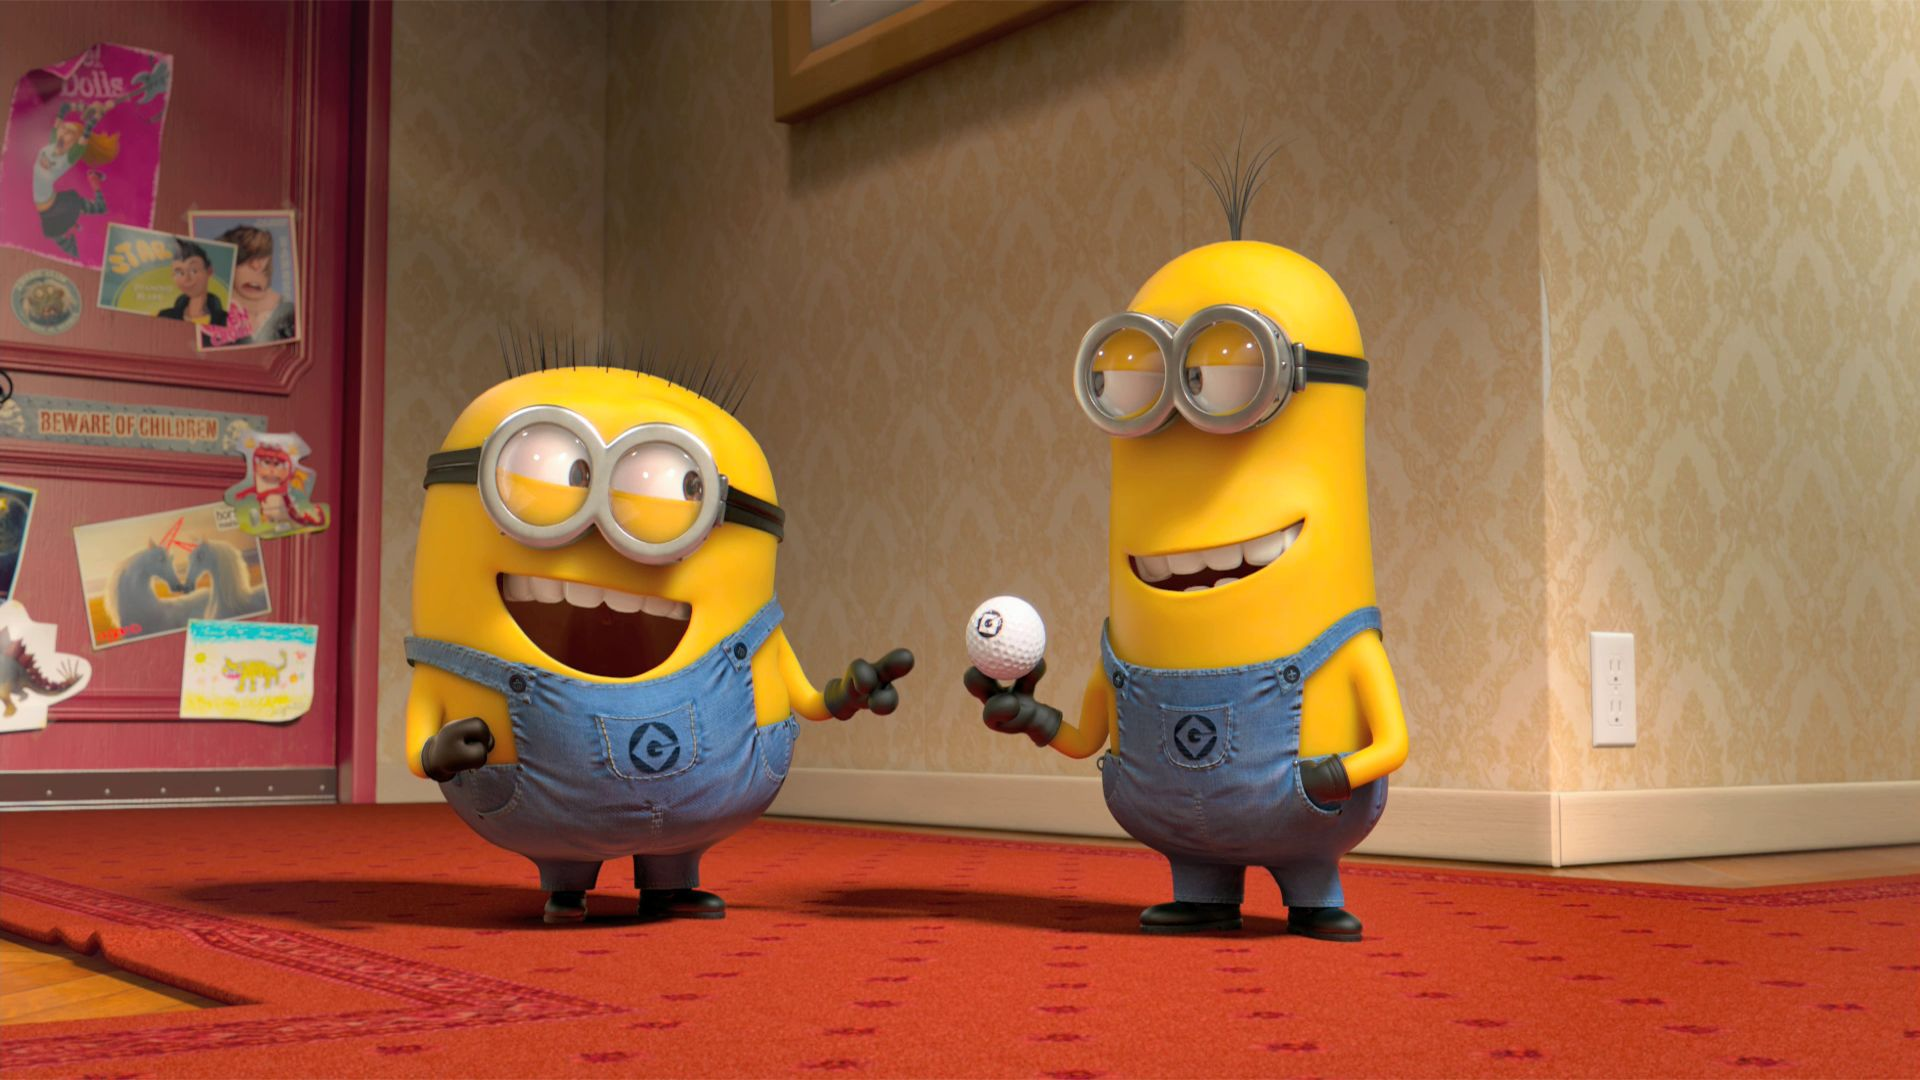 Despicable Me Minion Wallpapers Group 2560×1440 Despicable Me Pictures  Wallpapers (36 Wallpapers) | Adorable Wallpapers